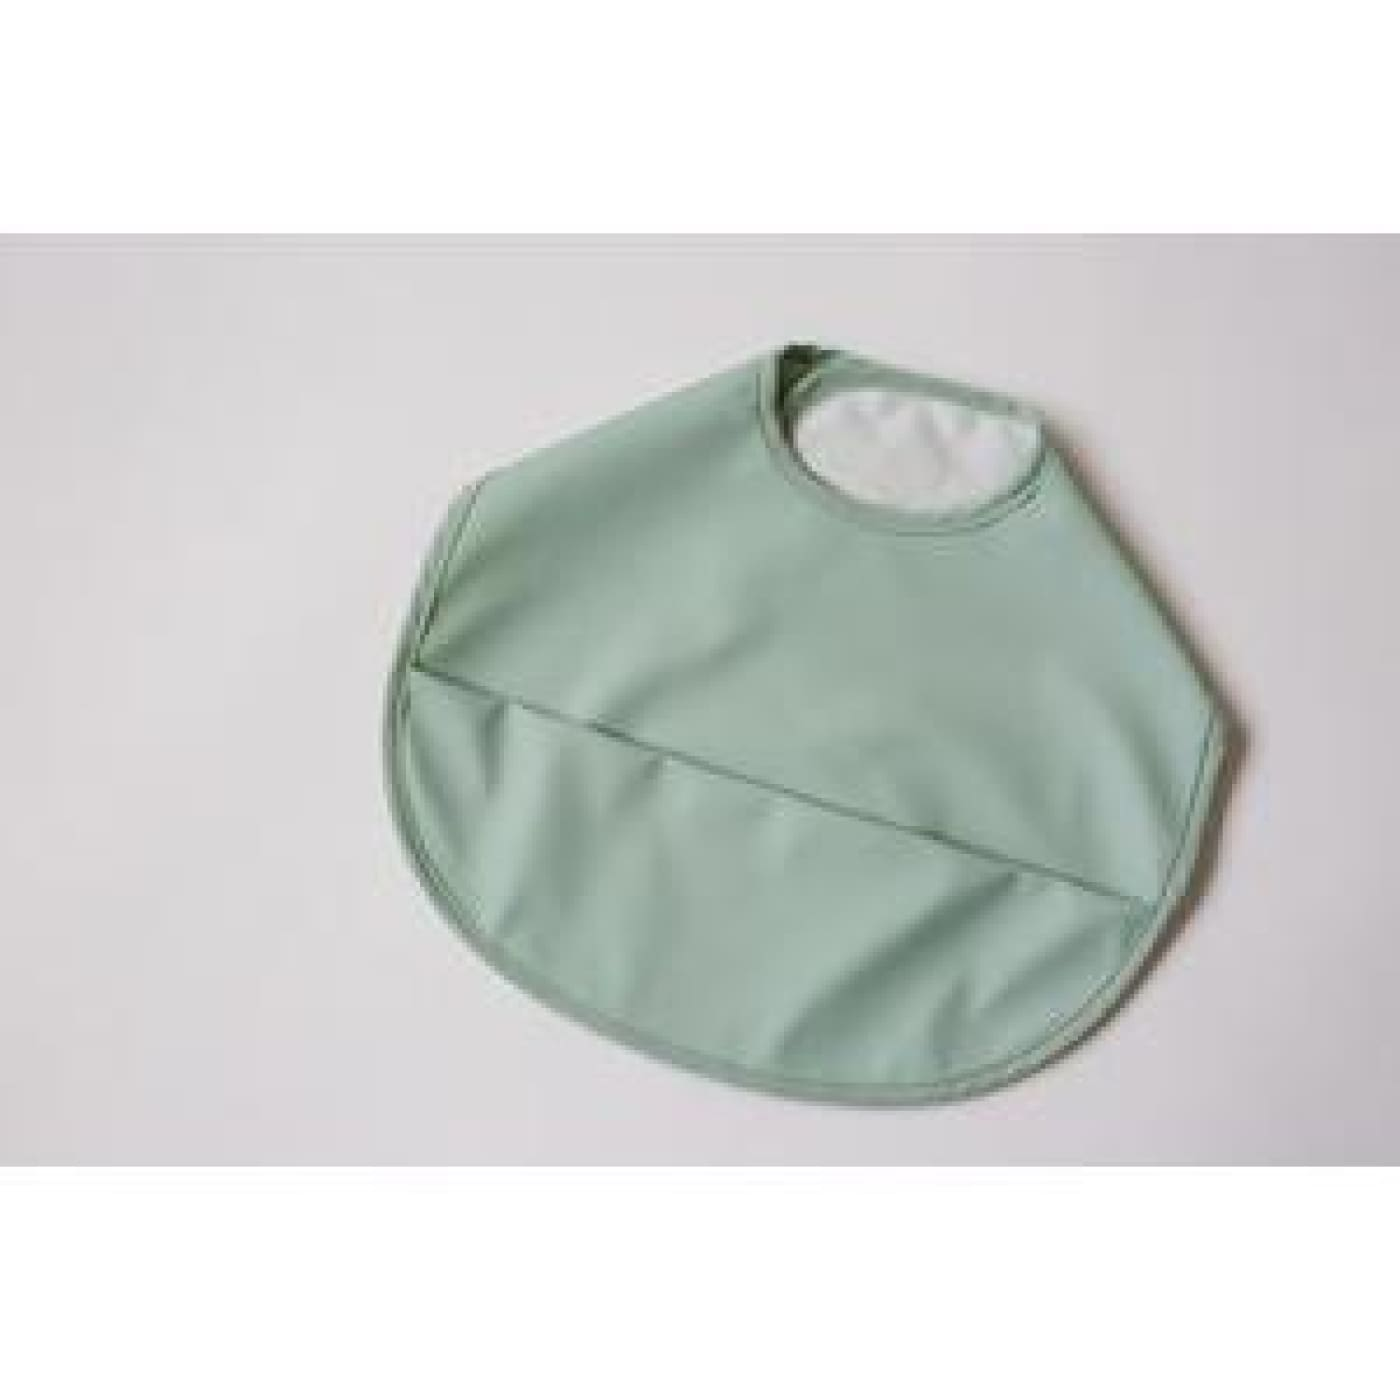 Snuggle Hunny Kids Snuggle Waterproof Bib - Sage - Sage - NURSING & FEEDING - BIBS/BURP CLOTHS